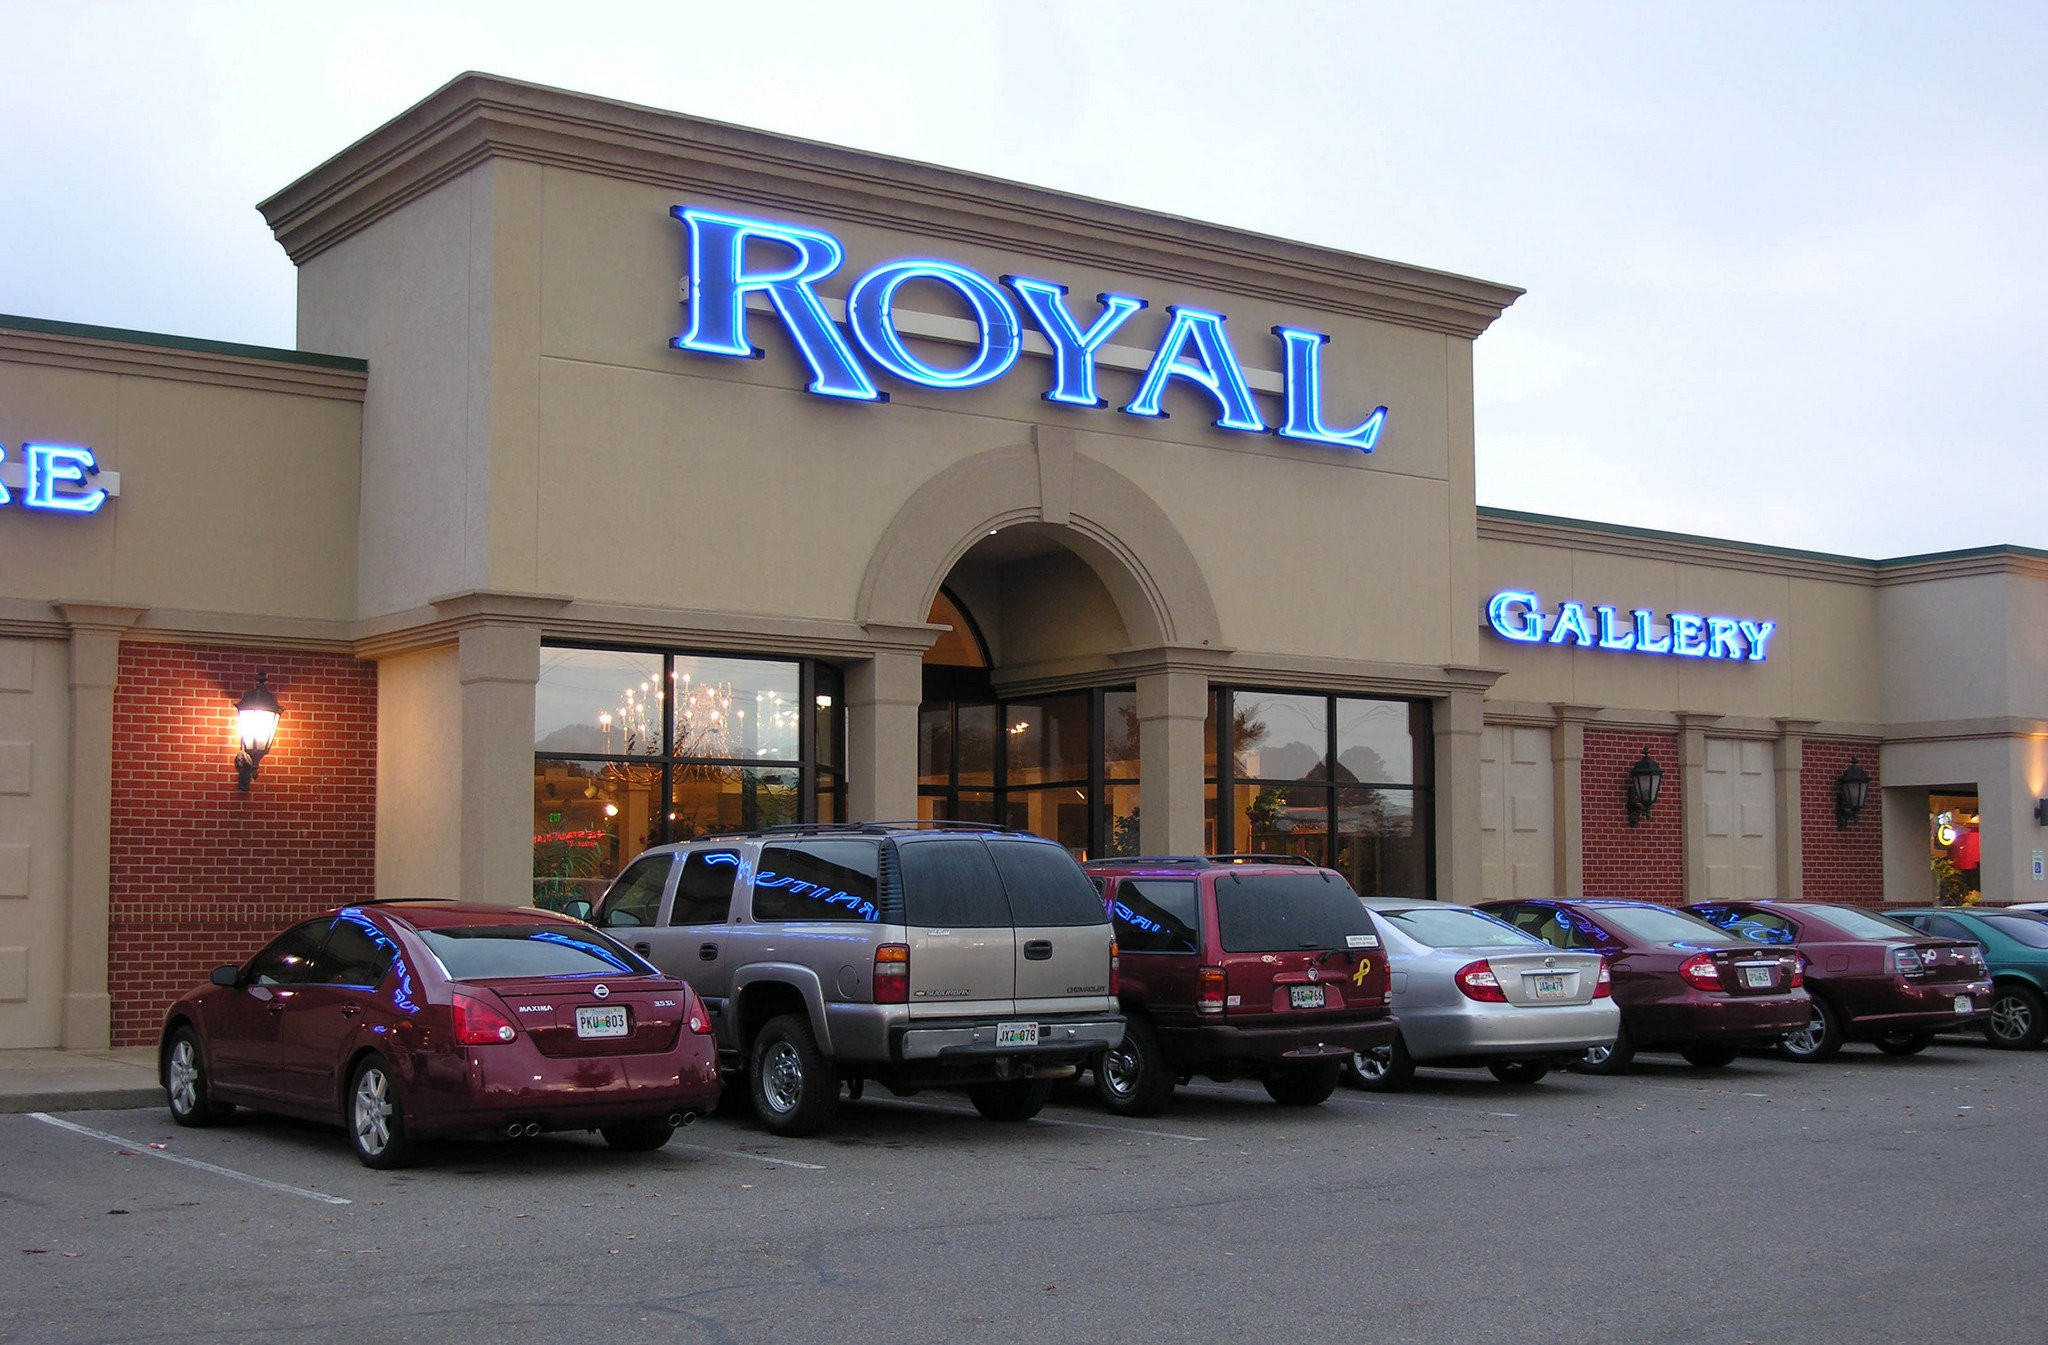 Attrayant Memphis Based Royal Furniture Moving Into Alabama With ...